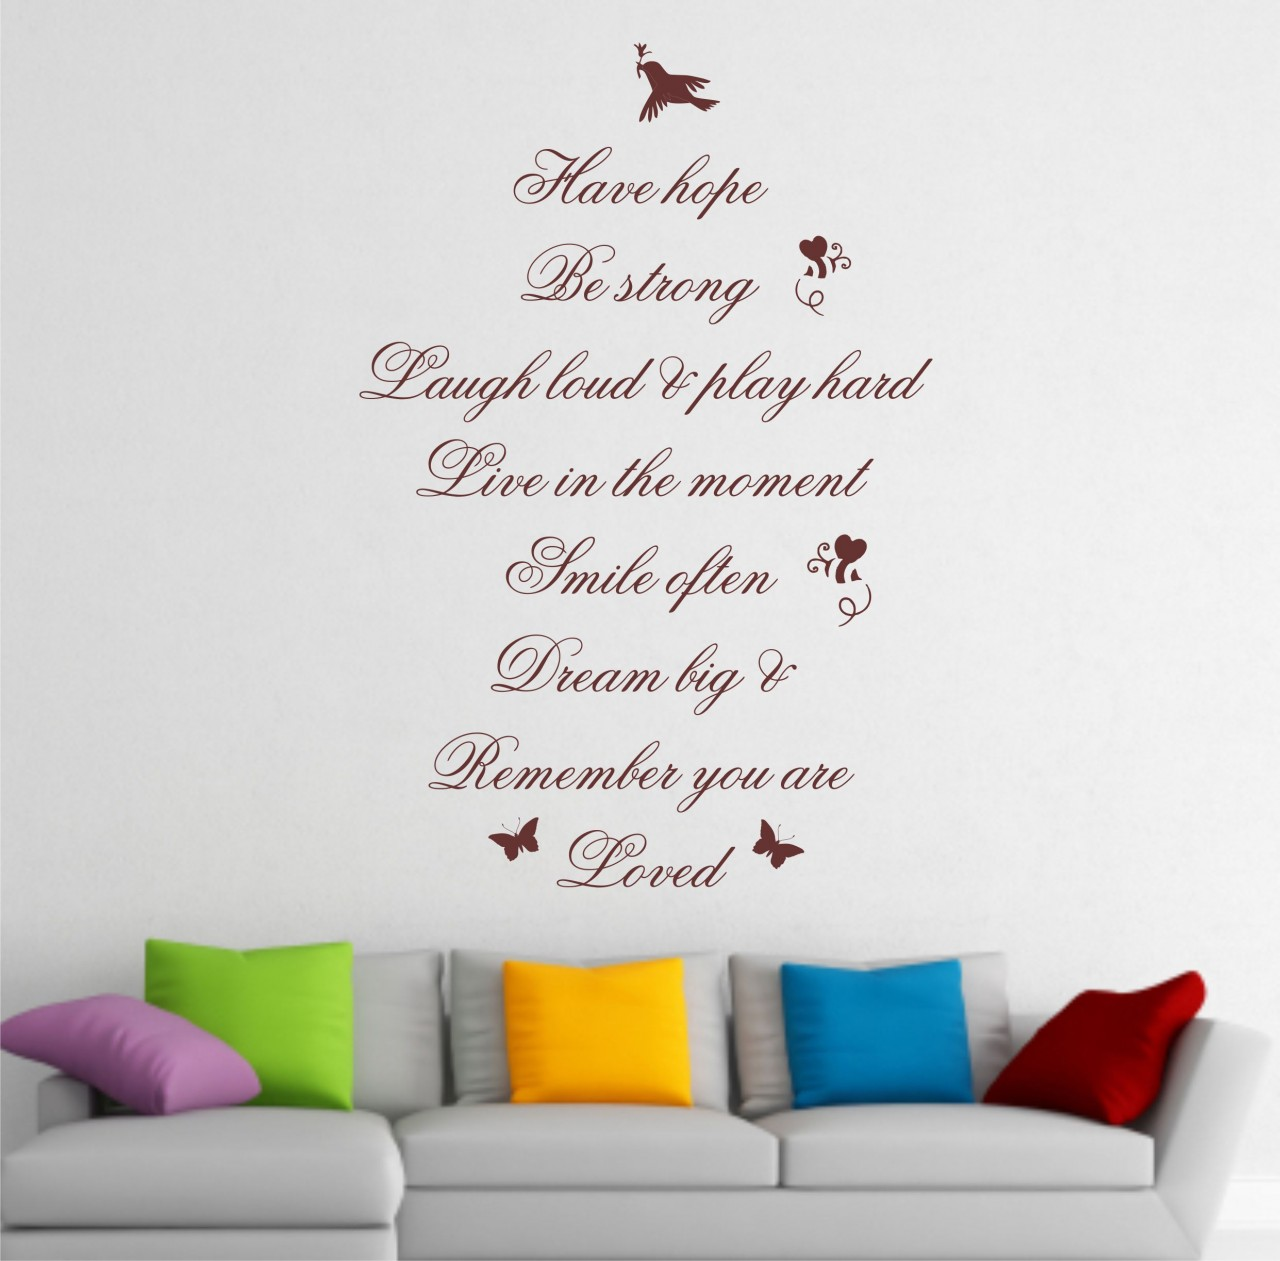 wall art quotes 48 wall art sayings, art canvas, bus scrolls, text quotes, quotes cities, AOWNNVK